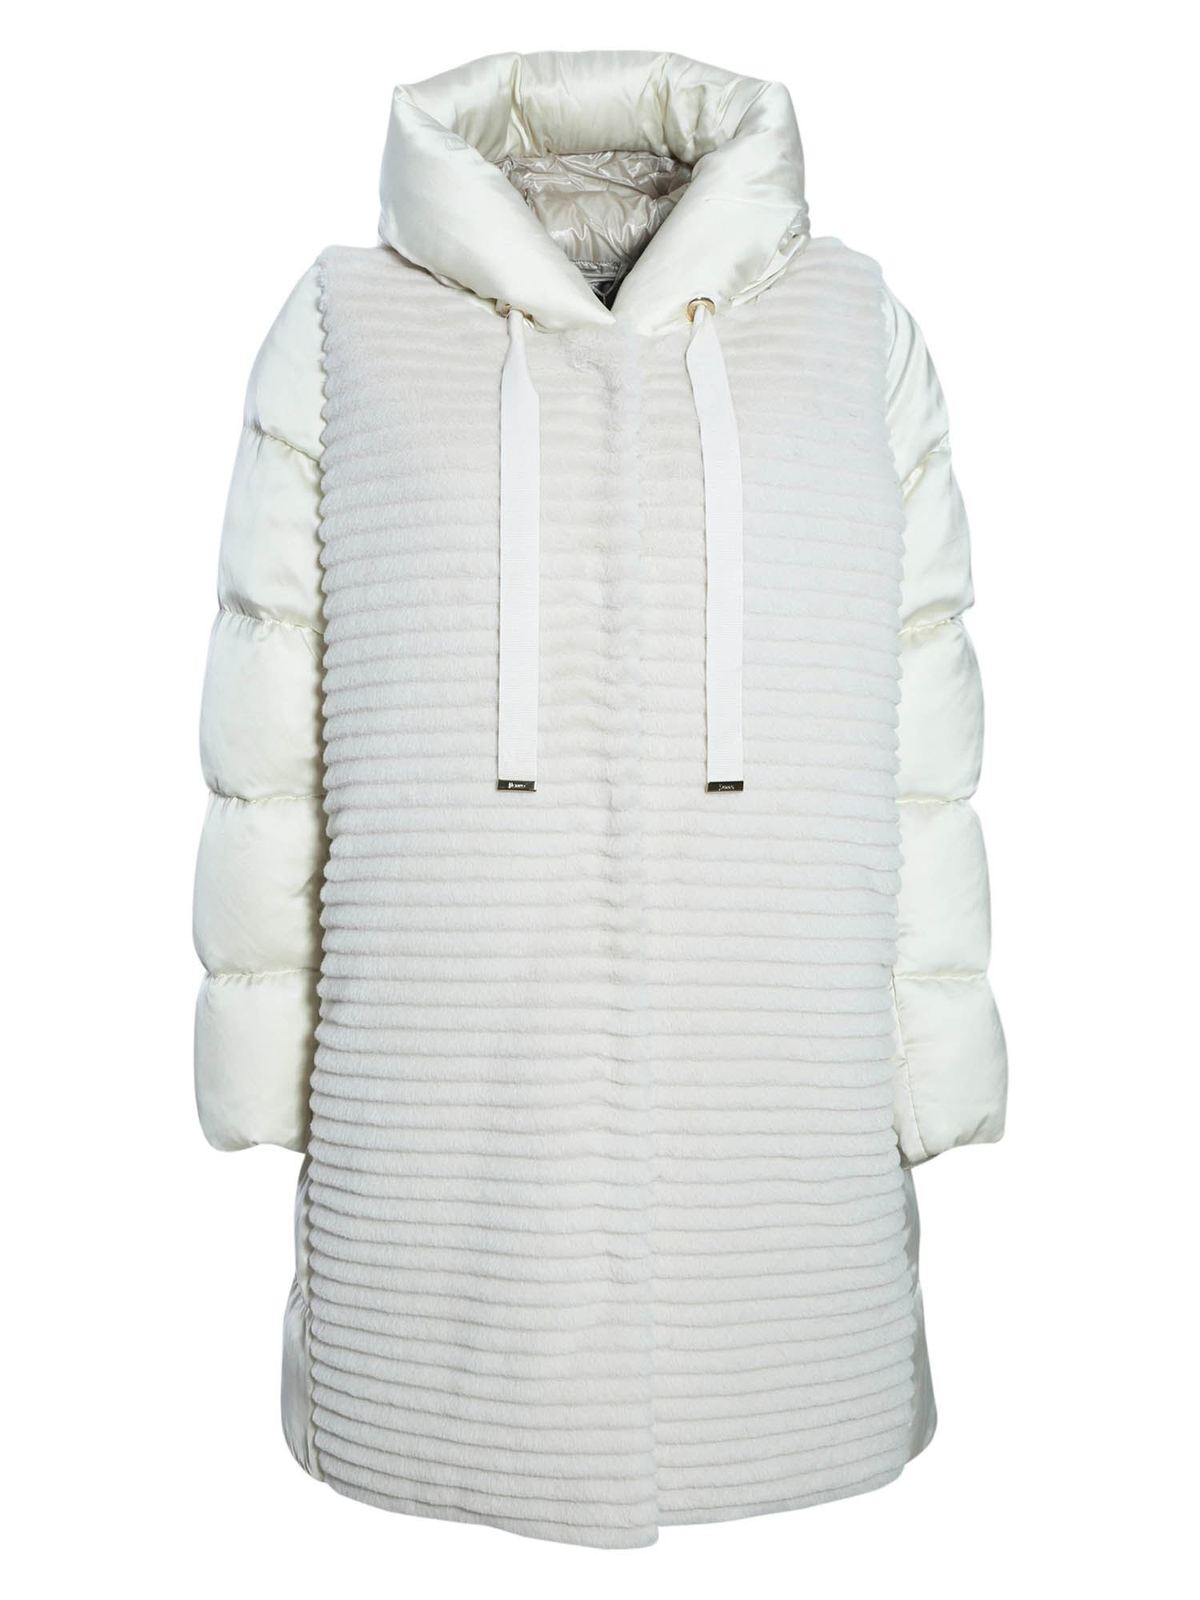 Herno DOWN JACKET IN WHITE FEATURING SYNTHETIC FUR